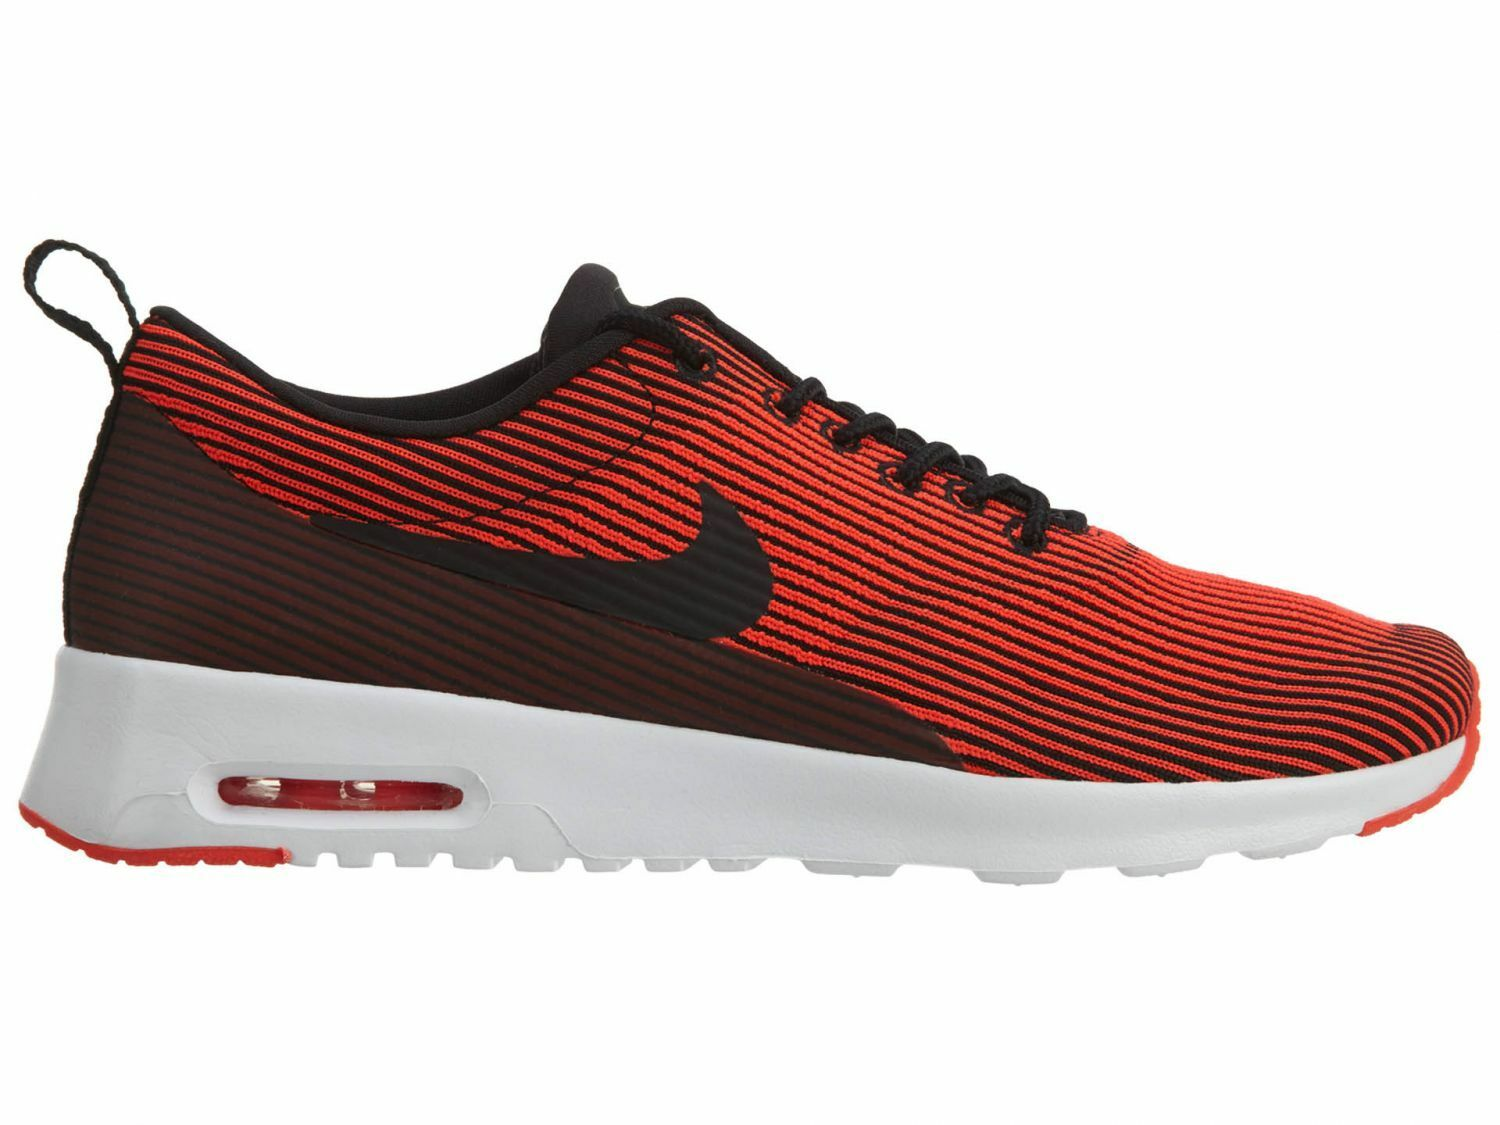 Nike Air Max Thea Kjcrd Womens 718646-007 Crimson Black Running Shoes Size 9.5